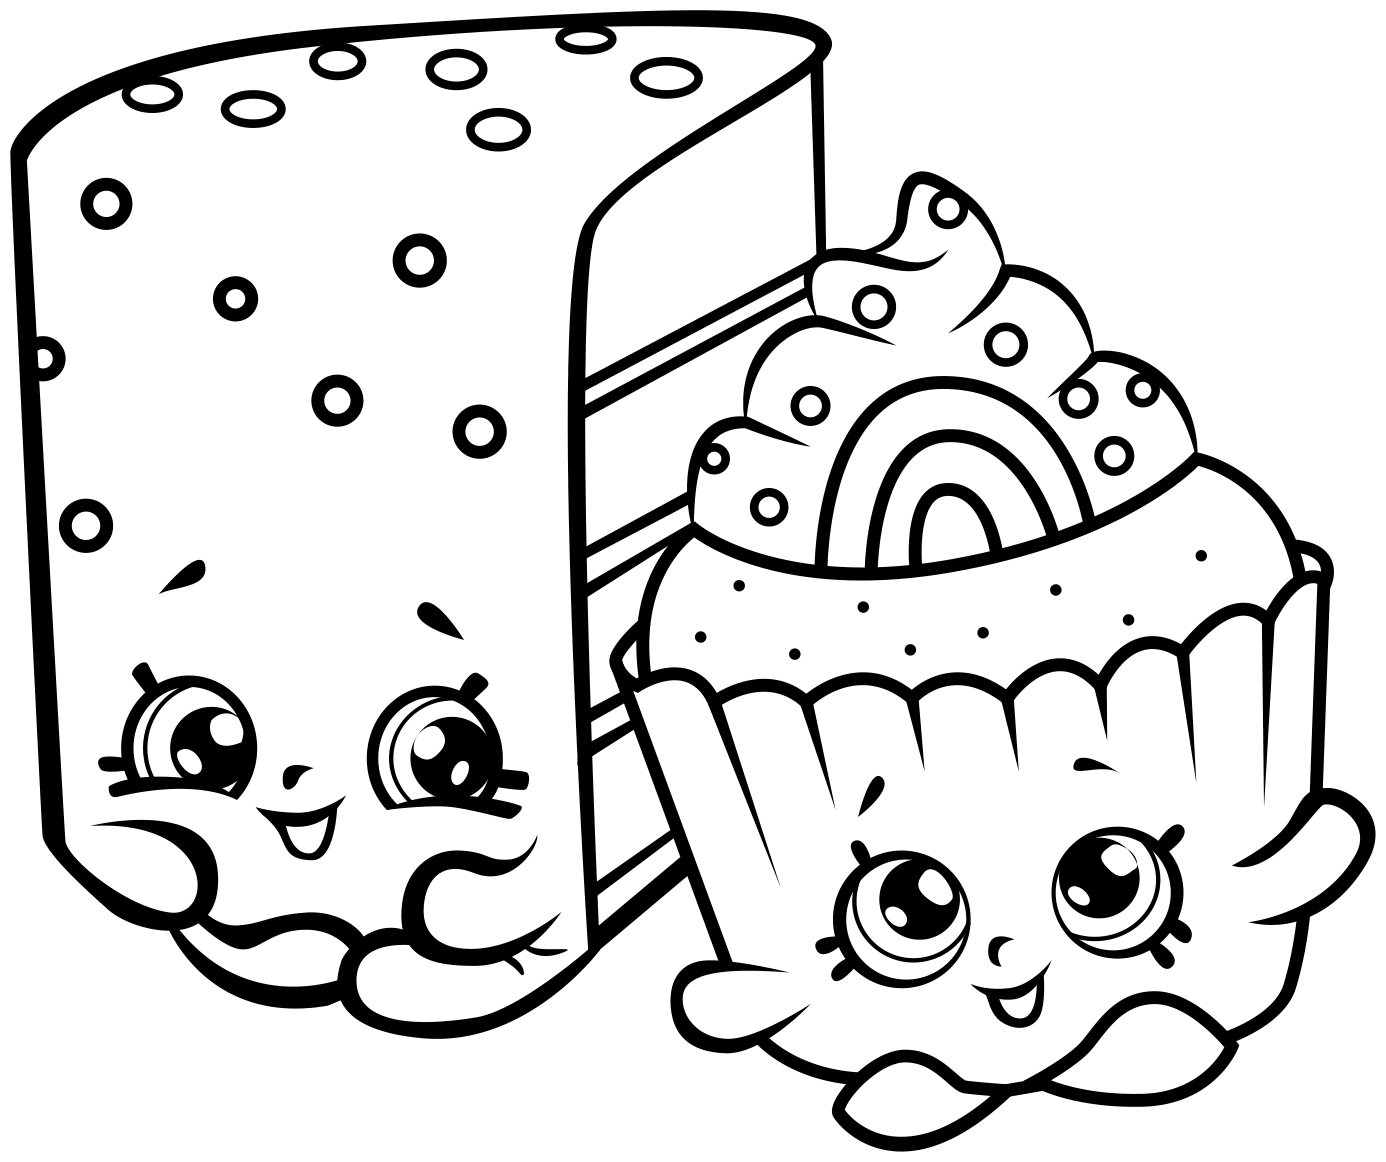 Shopkins Coloring Pages Best Coloring Pages For Kids Kids Printable Coloring Pages Unicorn Coloring Pages Shopkins Colouring Book